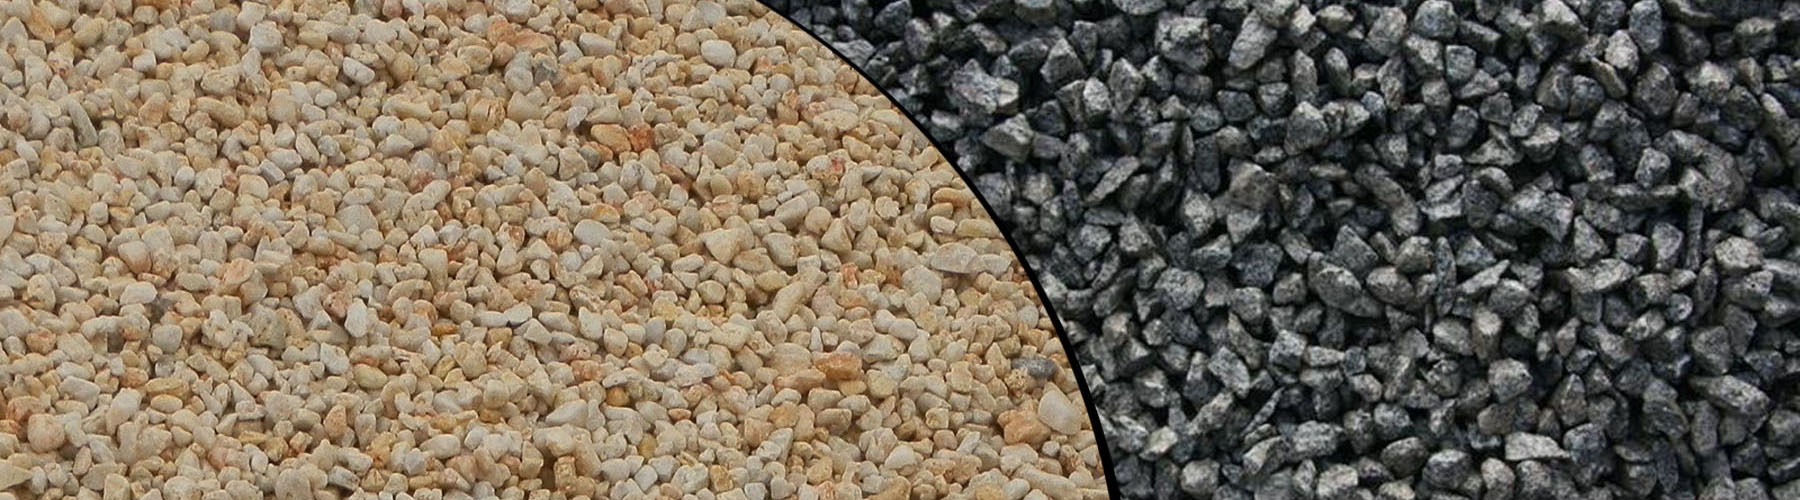 Frankston Sand & Soil, Frankston Sand soil, stone crushed rock, sand and soil, landscaping supplies, garden supplies, stone crushed rock Carrum Downs, sand soil Frankston, sand and soil Frankston, landscaping supplies Frankston, garden supplies Frankston, crushed rock Carrum Downs, crushed rock Langwarrin, sand soil Langwarrin, sand and soil Langwarrin, landscaping supplies Langwarrin, garden supplies Langwarrin, stone crushed rock Mornington Peninsula, crushed rock Mornington Peninsula, stone Mornington Peninsula, sand soil Mornington Peninsula, sand and soil Mornington Peninsula, landscaping supplies Mornington Peninsula, garden supplies Mornington Peninsula, stone crushed rock Skye, crushed rock Skye, stone Skye, sand soil Skye, sand and soil Skye, landscaping supplies Skye, garden supplies Skye, stone crushed rock Rowville, crushed rock Rowville, stone Rowville, sand soil Rowville, sand and soil Rowville, landscaping supplies Rowville, garden supplies Rowville, crushed rock screening Frankston, crushed rock screening Carrum Downs, crushed rock screening Skye, crushed rock screening Mornington Peninsula, crushed rock screening Seaford, crushed rock screening Rowville, crushed rock screening Glen Waverley